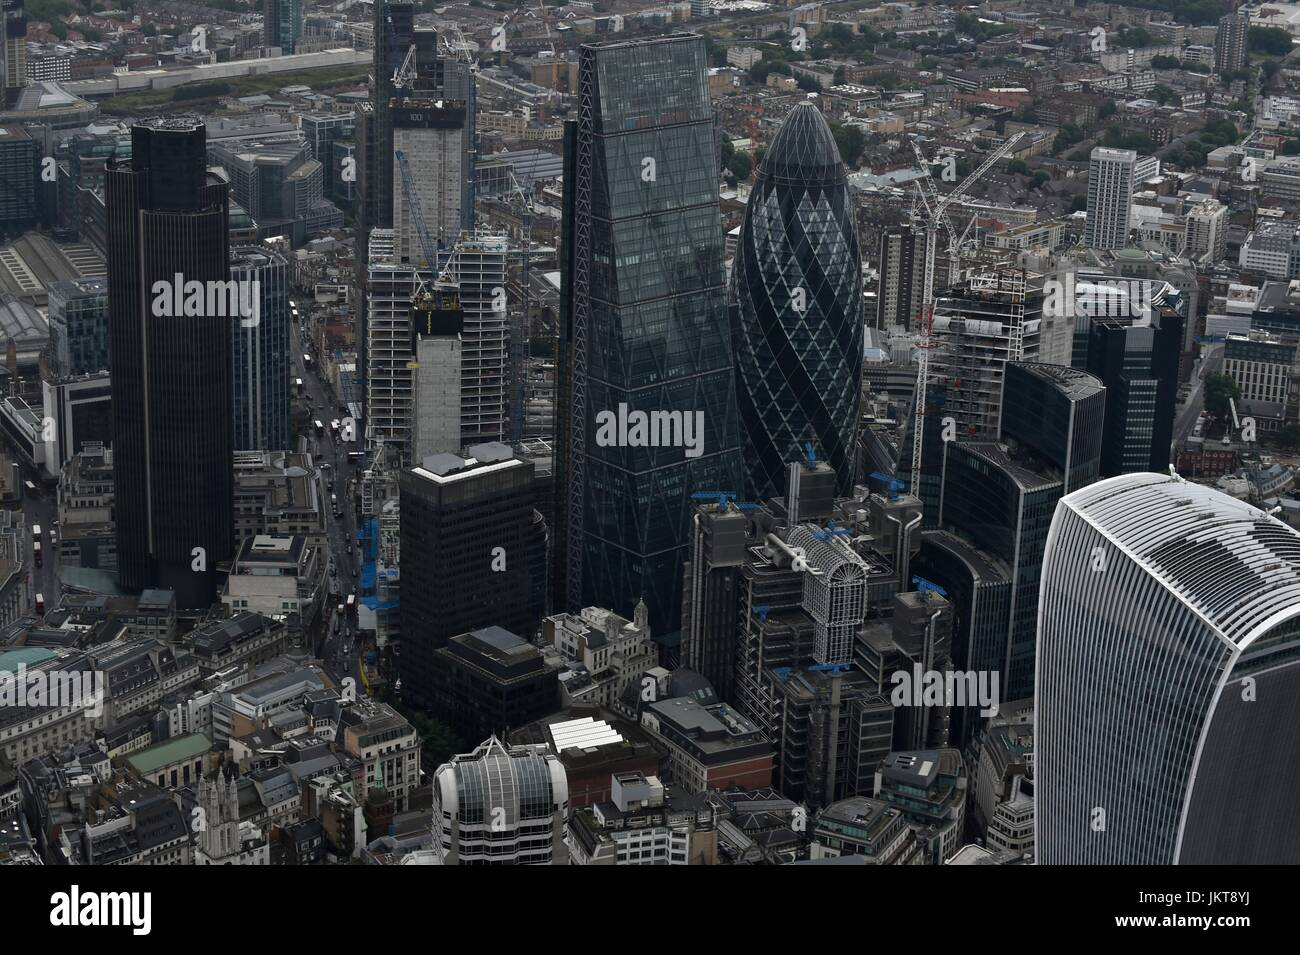 Aerial views over London - Stock Image